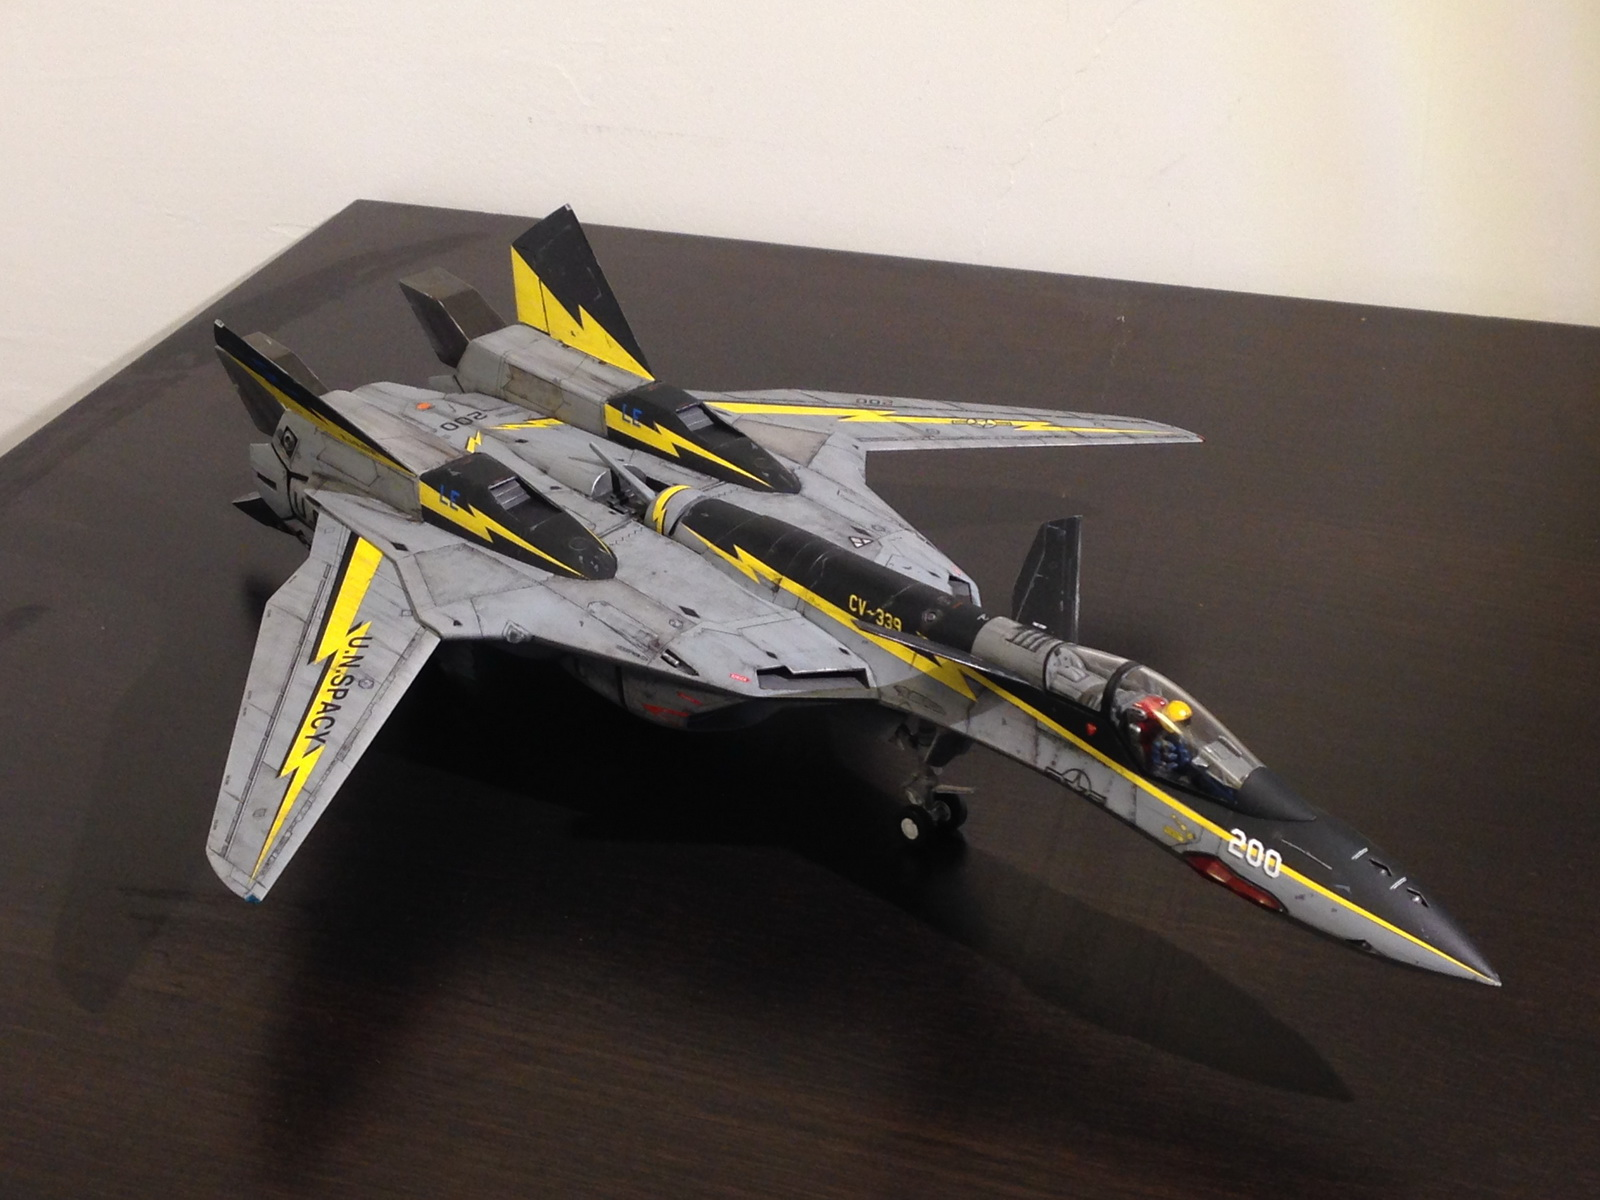 model air planes with Photo Gallery on 11399805282920553 in addition Funny Cartoon Plane Flying For Kids in addition Assembly Flight Review E Flite 1 2m P 47 Thunderbolt Razorback also Model 2016 further 94153448439912212.